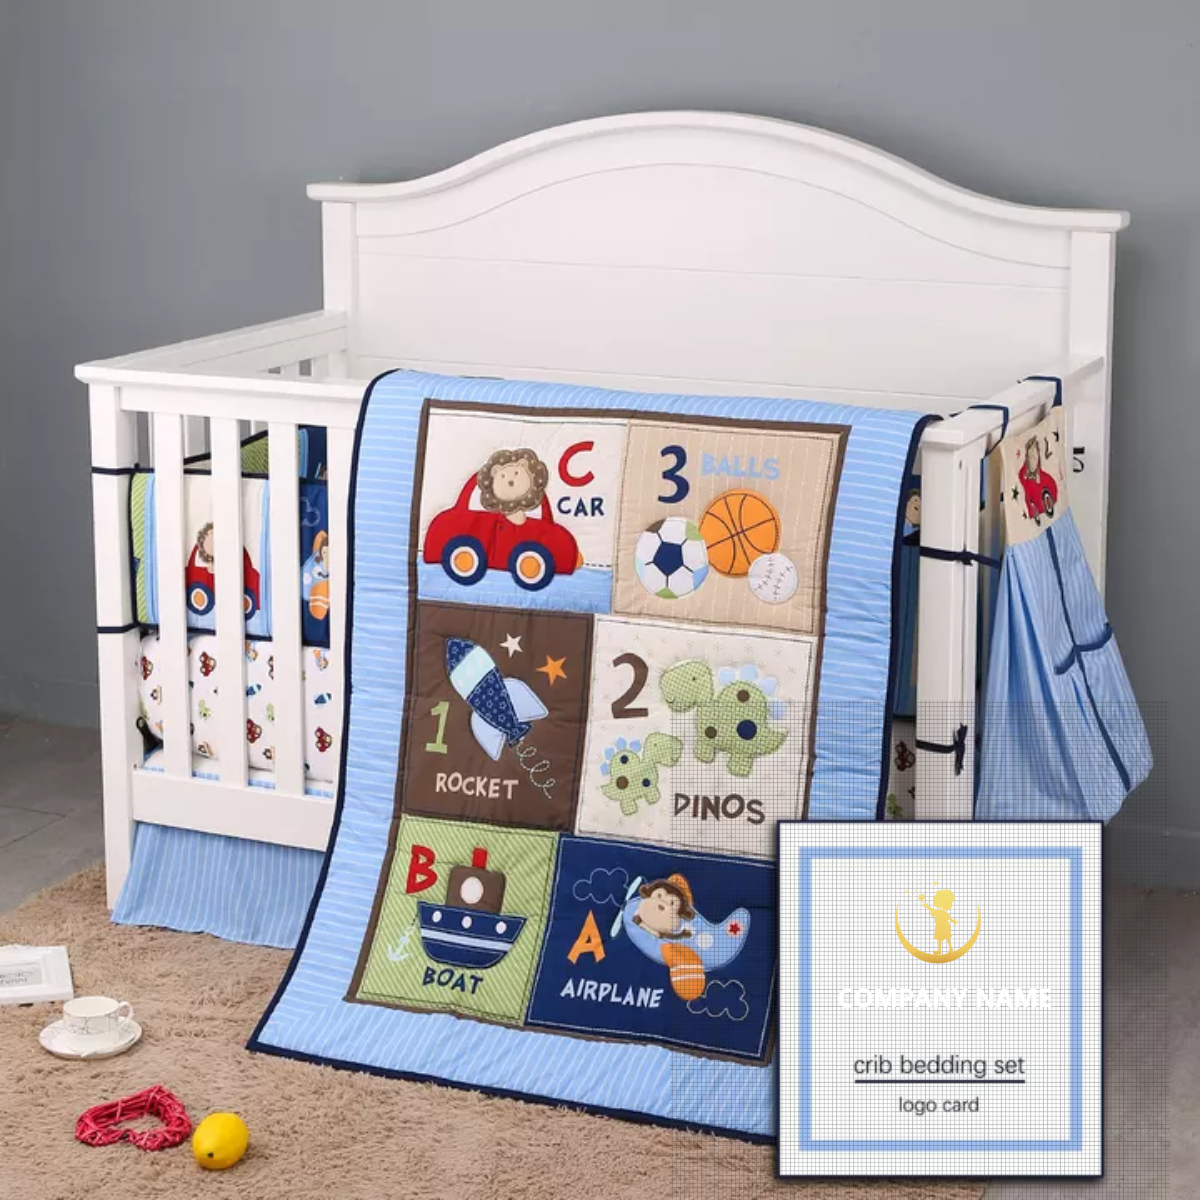 Blue Crib Bedding Sets For Boys 7 Piece Travel Car And Airplane For Baby Buy Bedding Sets For Kids Navy Blue Bedding Set European Baby Bedding Set Product On Alibaba Com